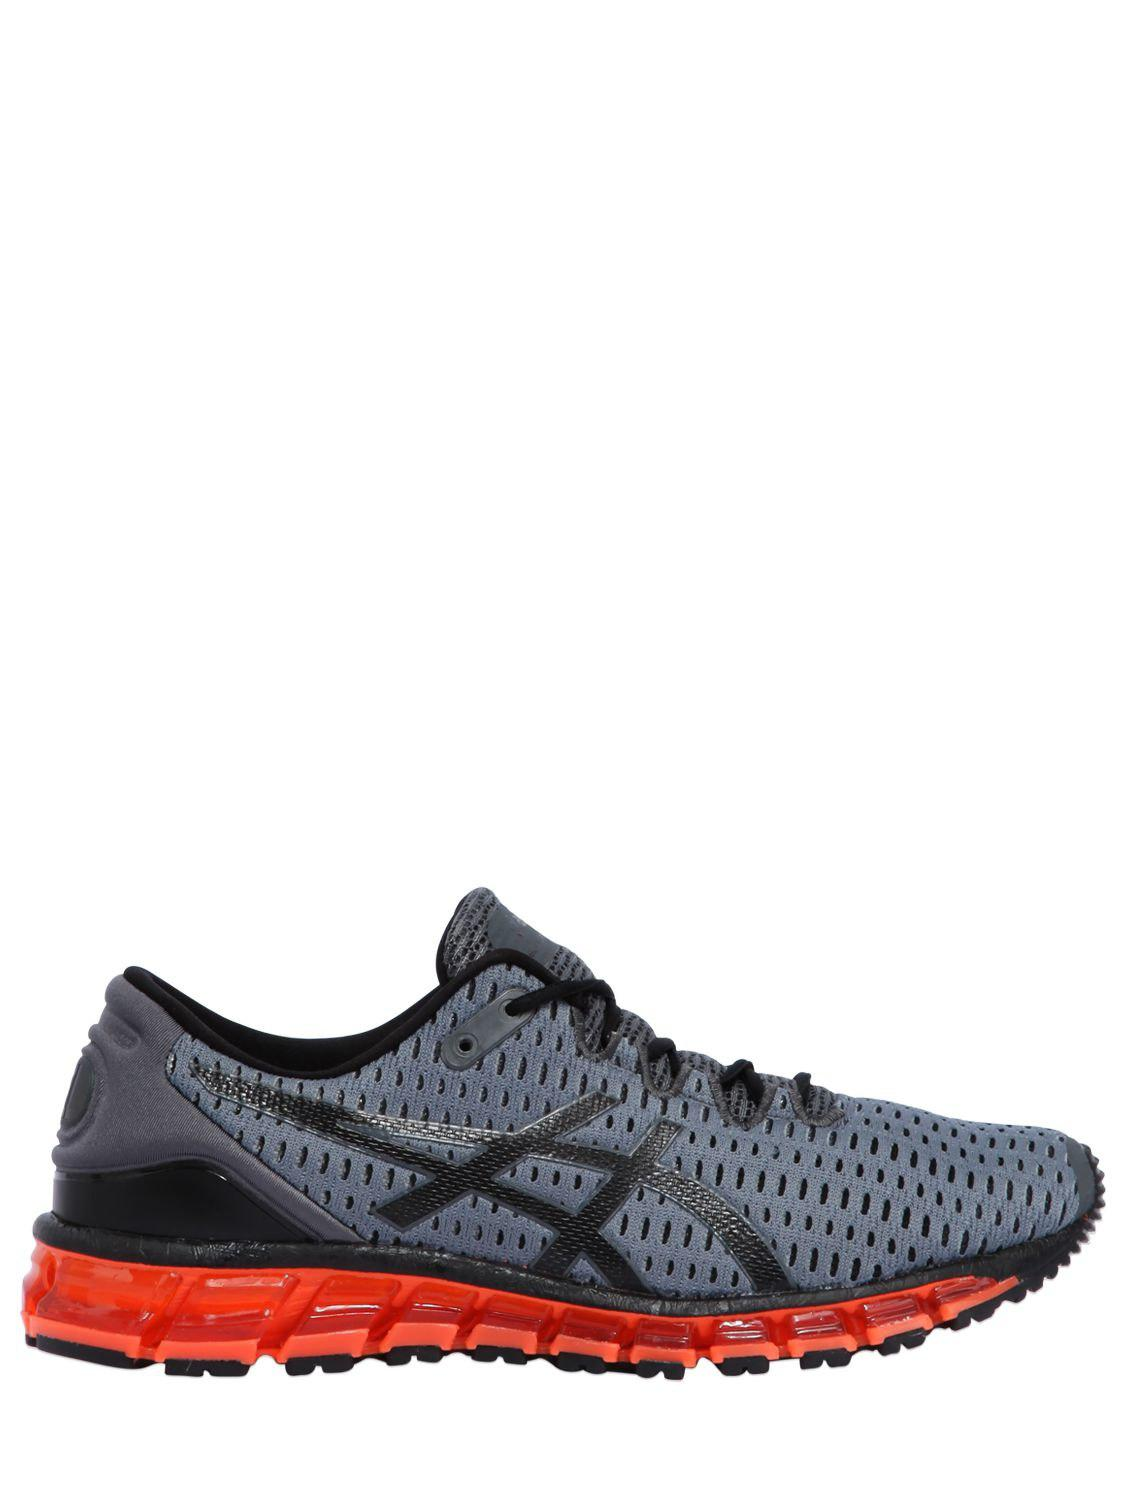 Asics Gel quantum 360 Shift Sneakers Shift en Sneakers 360 Gris pour Homme Lyst 9f8c5b4 - kyomin.website